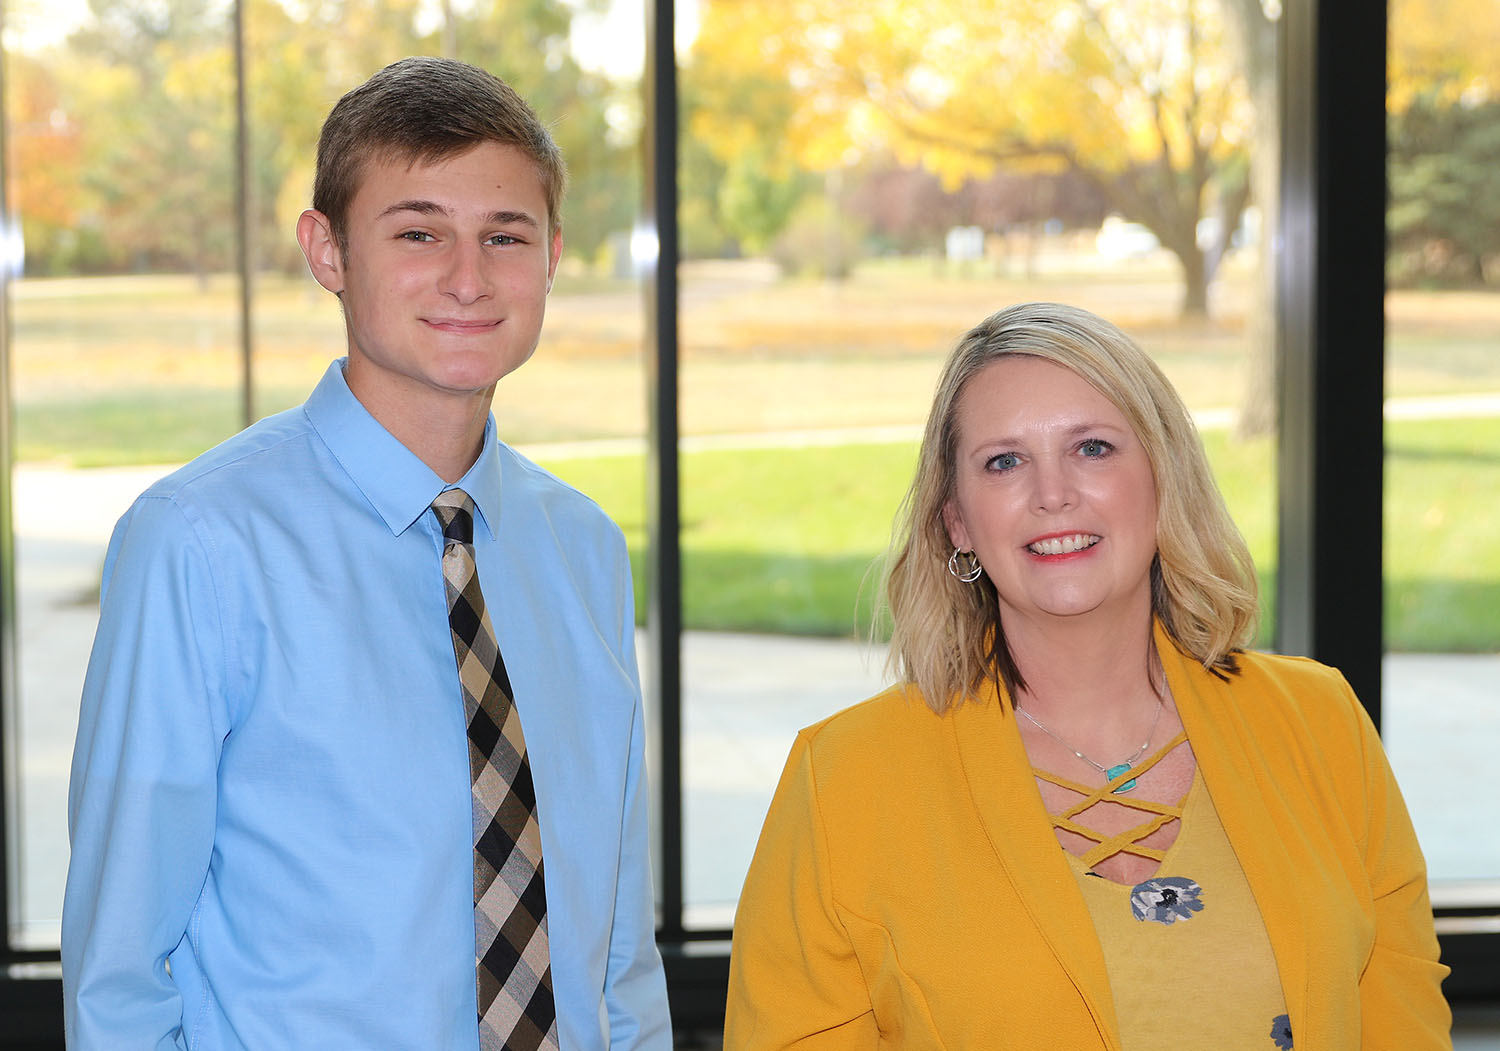 UNK's Office of Student and Family Transitions supports freshmen and transfer students through a variety of programming, services and involvement opportunities. UNK junior DJ Hardwick is a student coordinator in the office and Renae Zimmer is the assistant director.